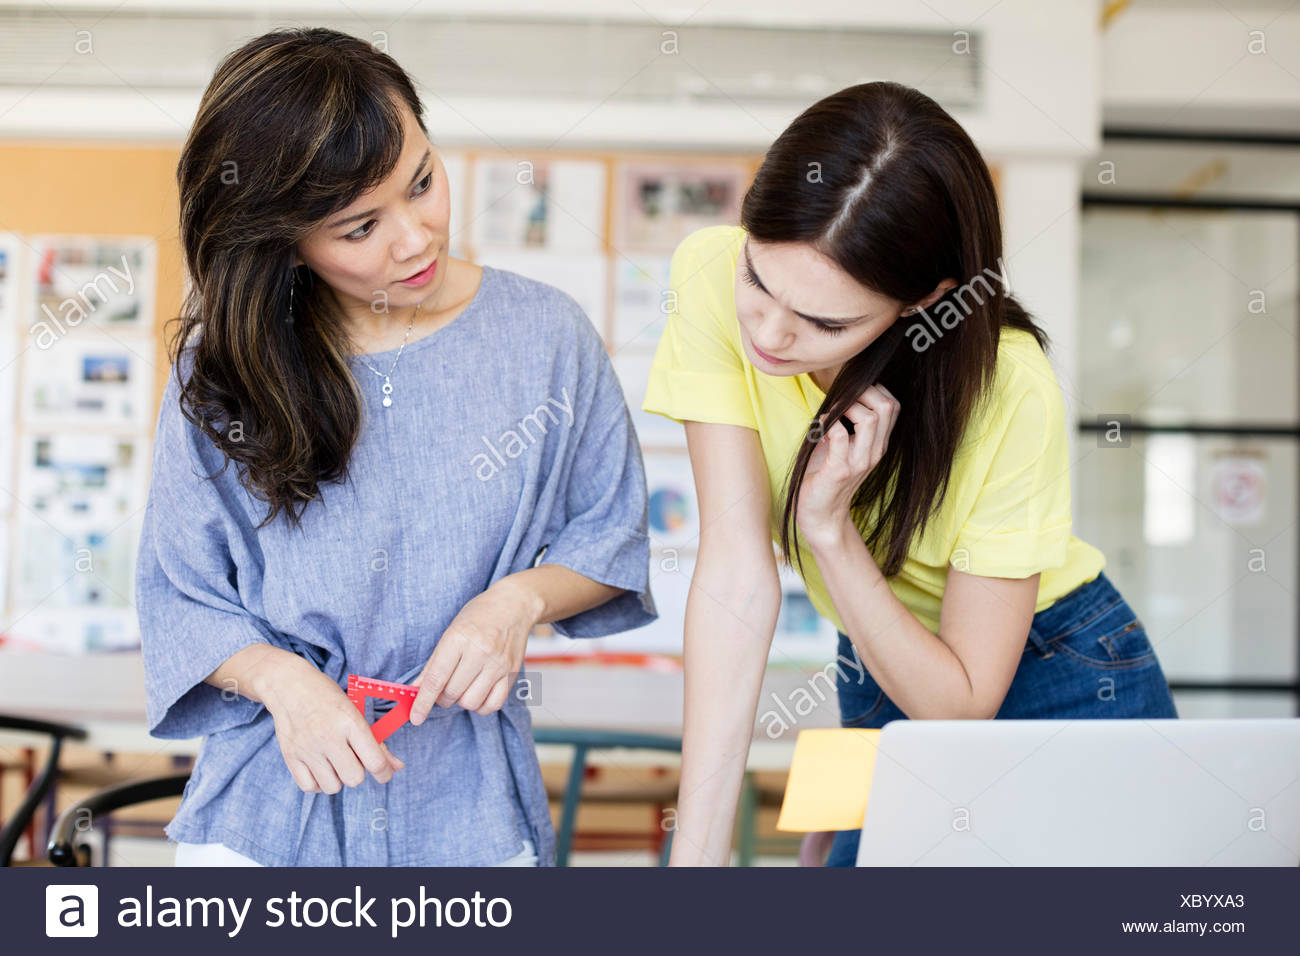 Teacher and student discussing work - Stock Image